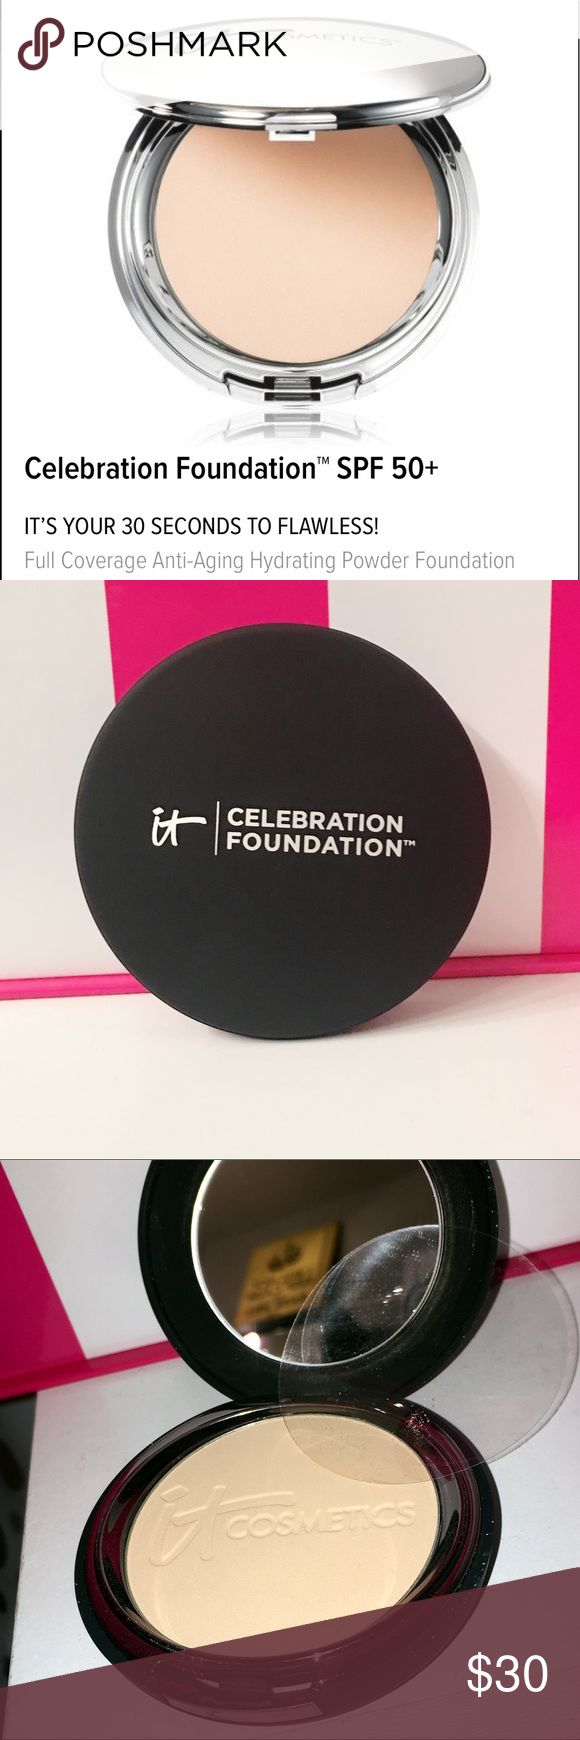 IT COSMETICS Celebration Foundation SPF 50 Best powder foundation I have tried !!! I got 2 - this one is new and untouched - only out of box for photos - SPF 50 - won't clog pores !! Perfect for Summer !! Anti Aging ! Retail $35 - IT COSMETICS  Makeup Foundation